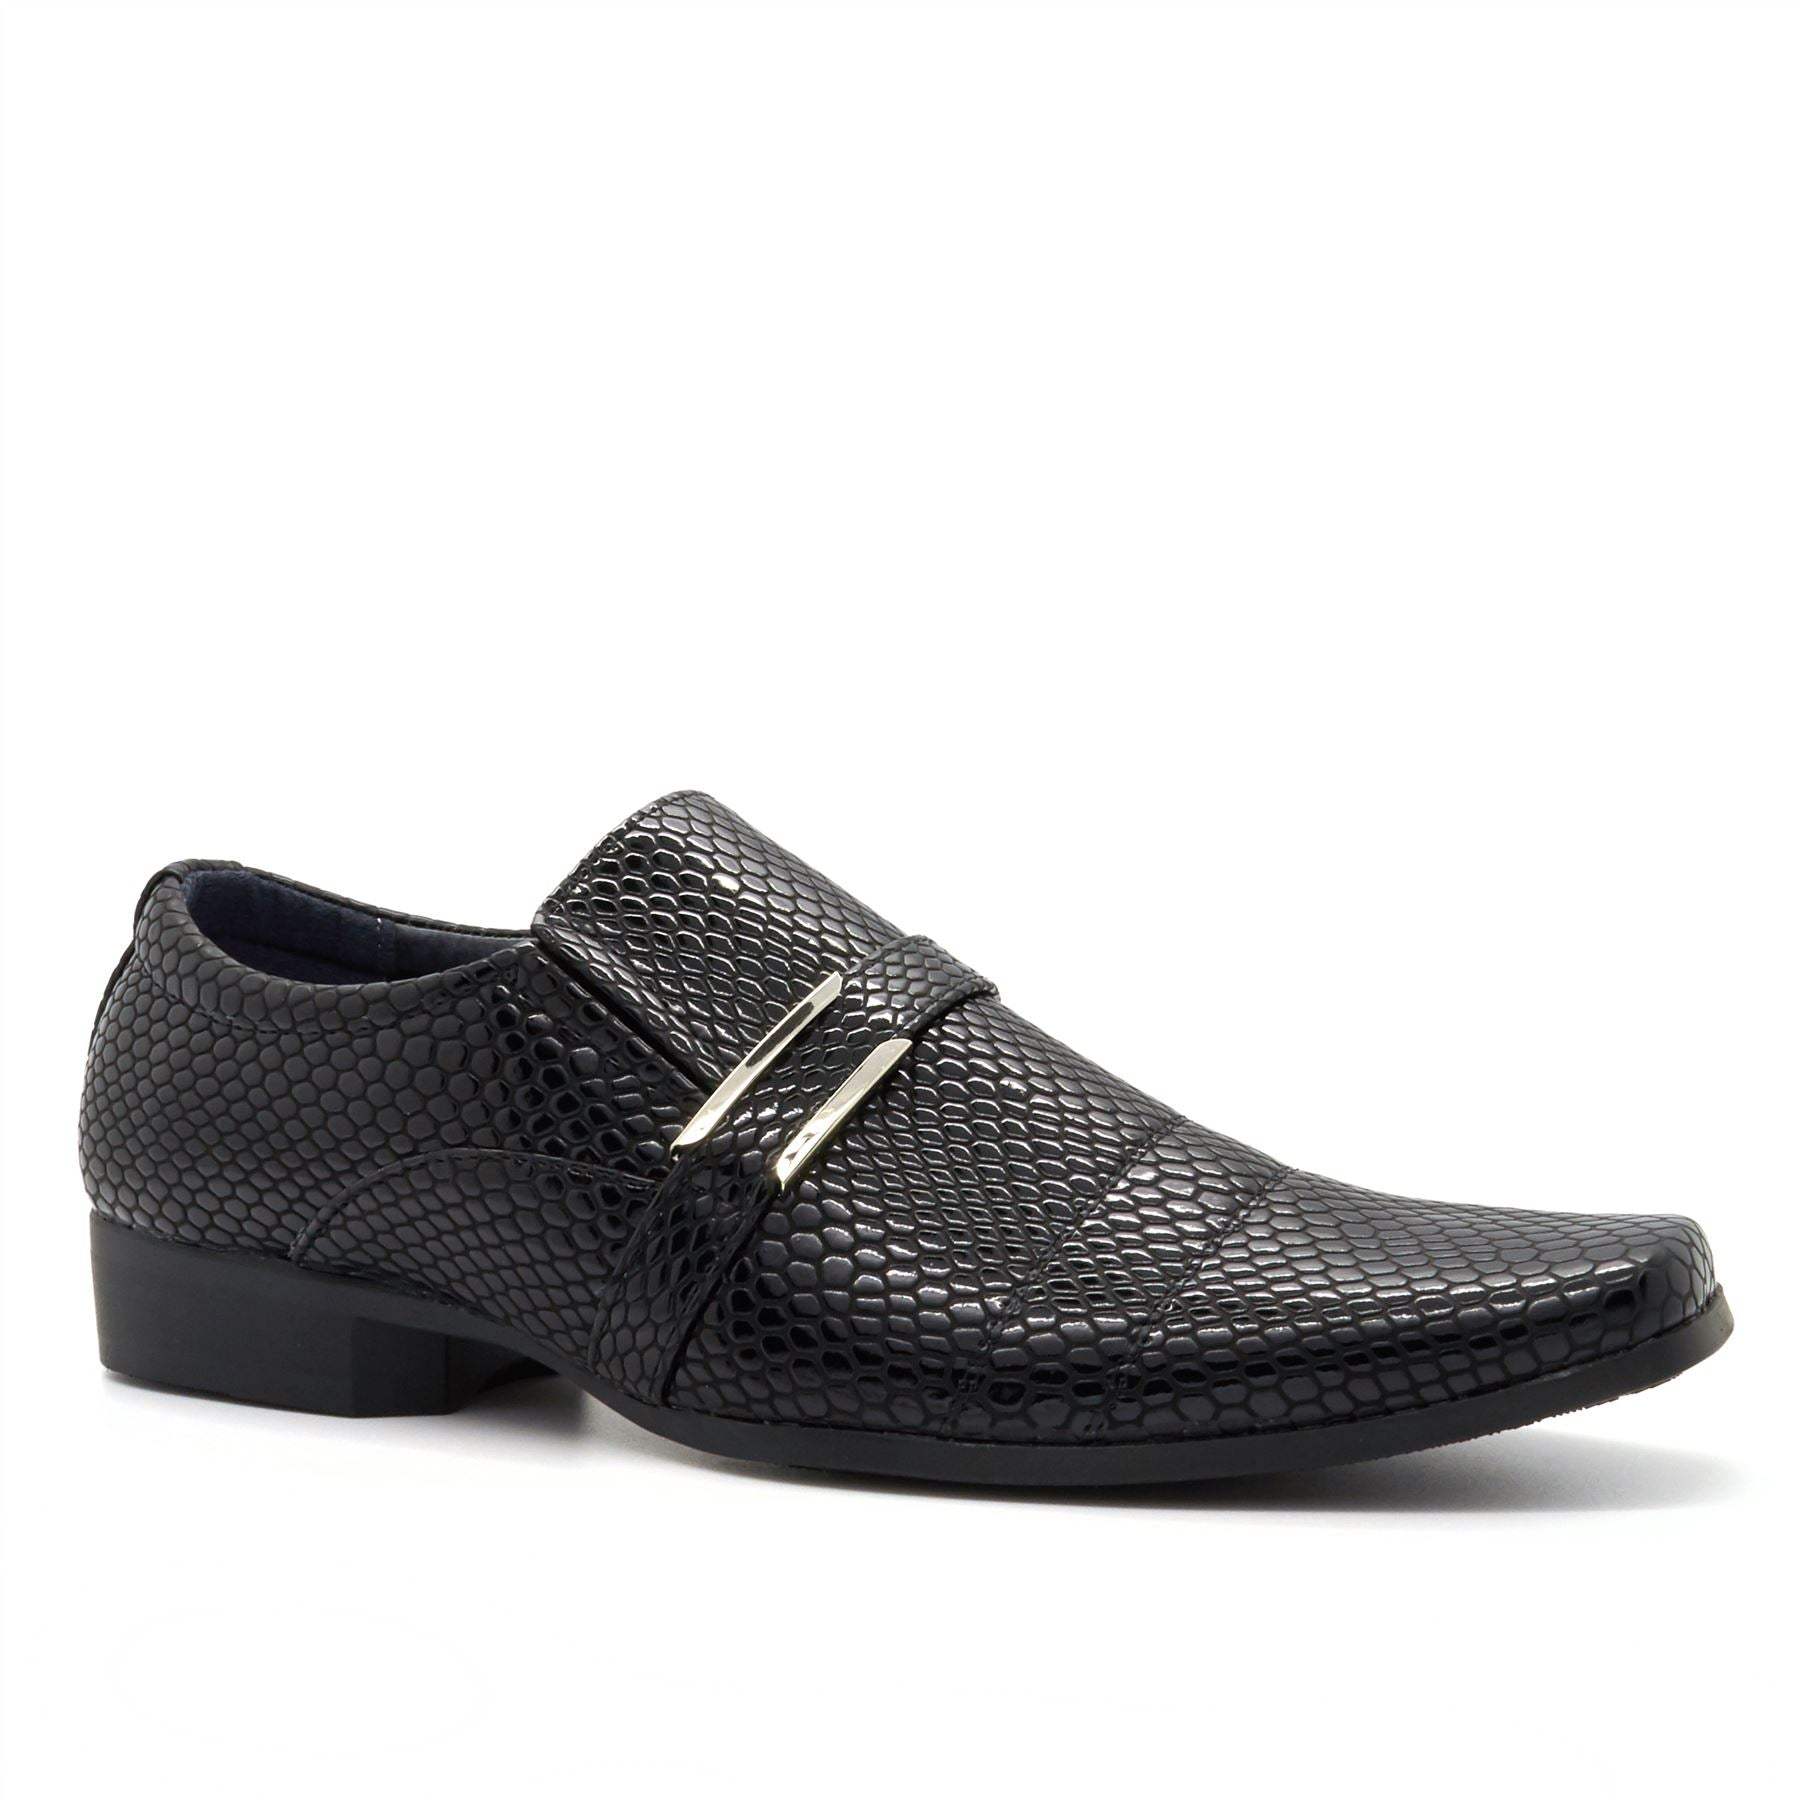 Black Moc Croc Buckle Detail Slip On Shoes